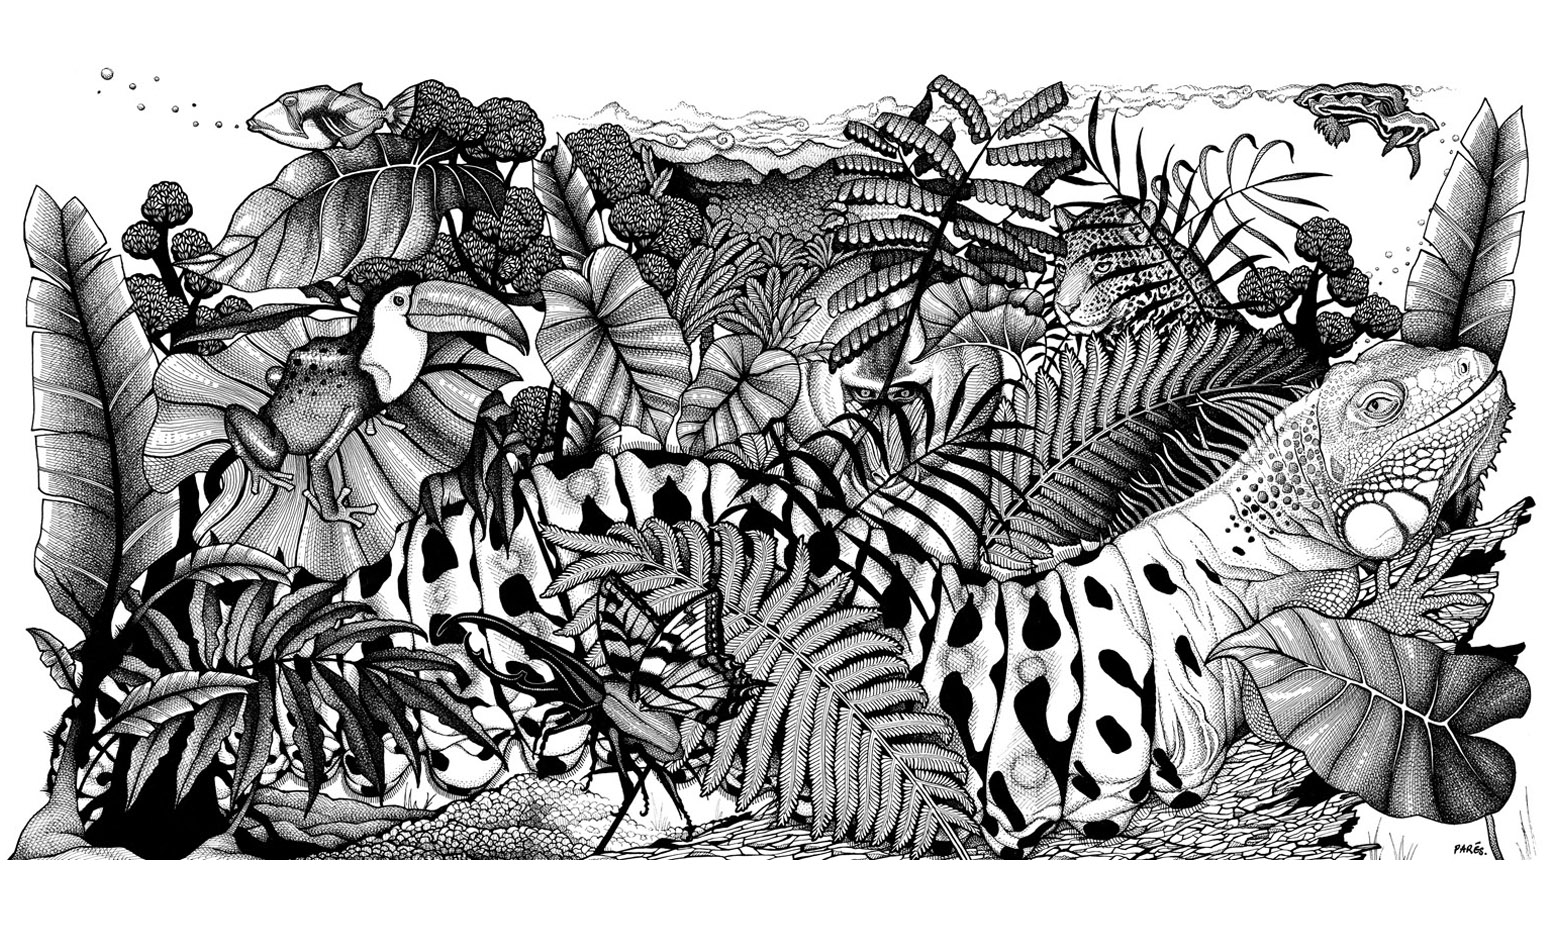 Stunning black and white drawing to print and color with lush vegetation hiding many animals ... In the coloring to see them more easily! Many details